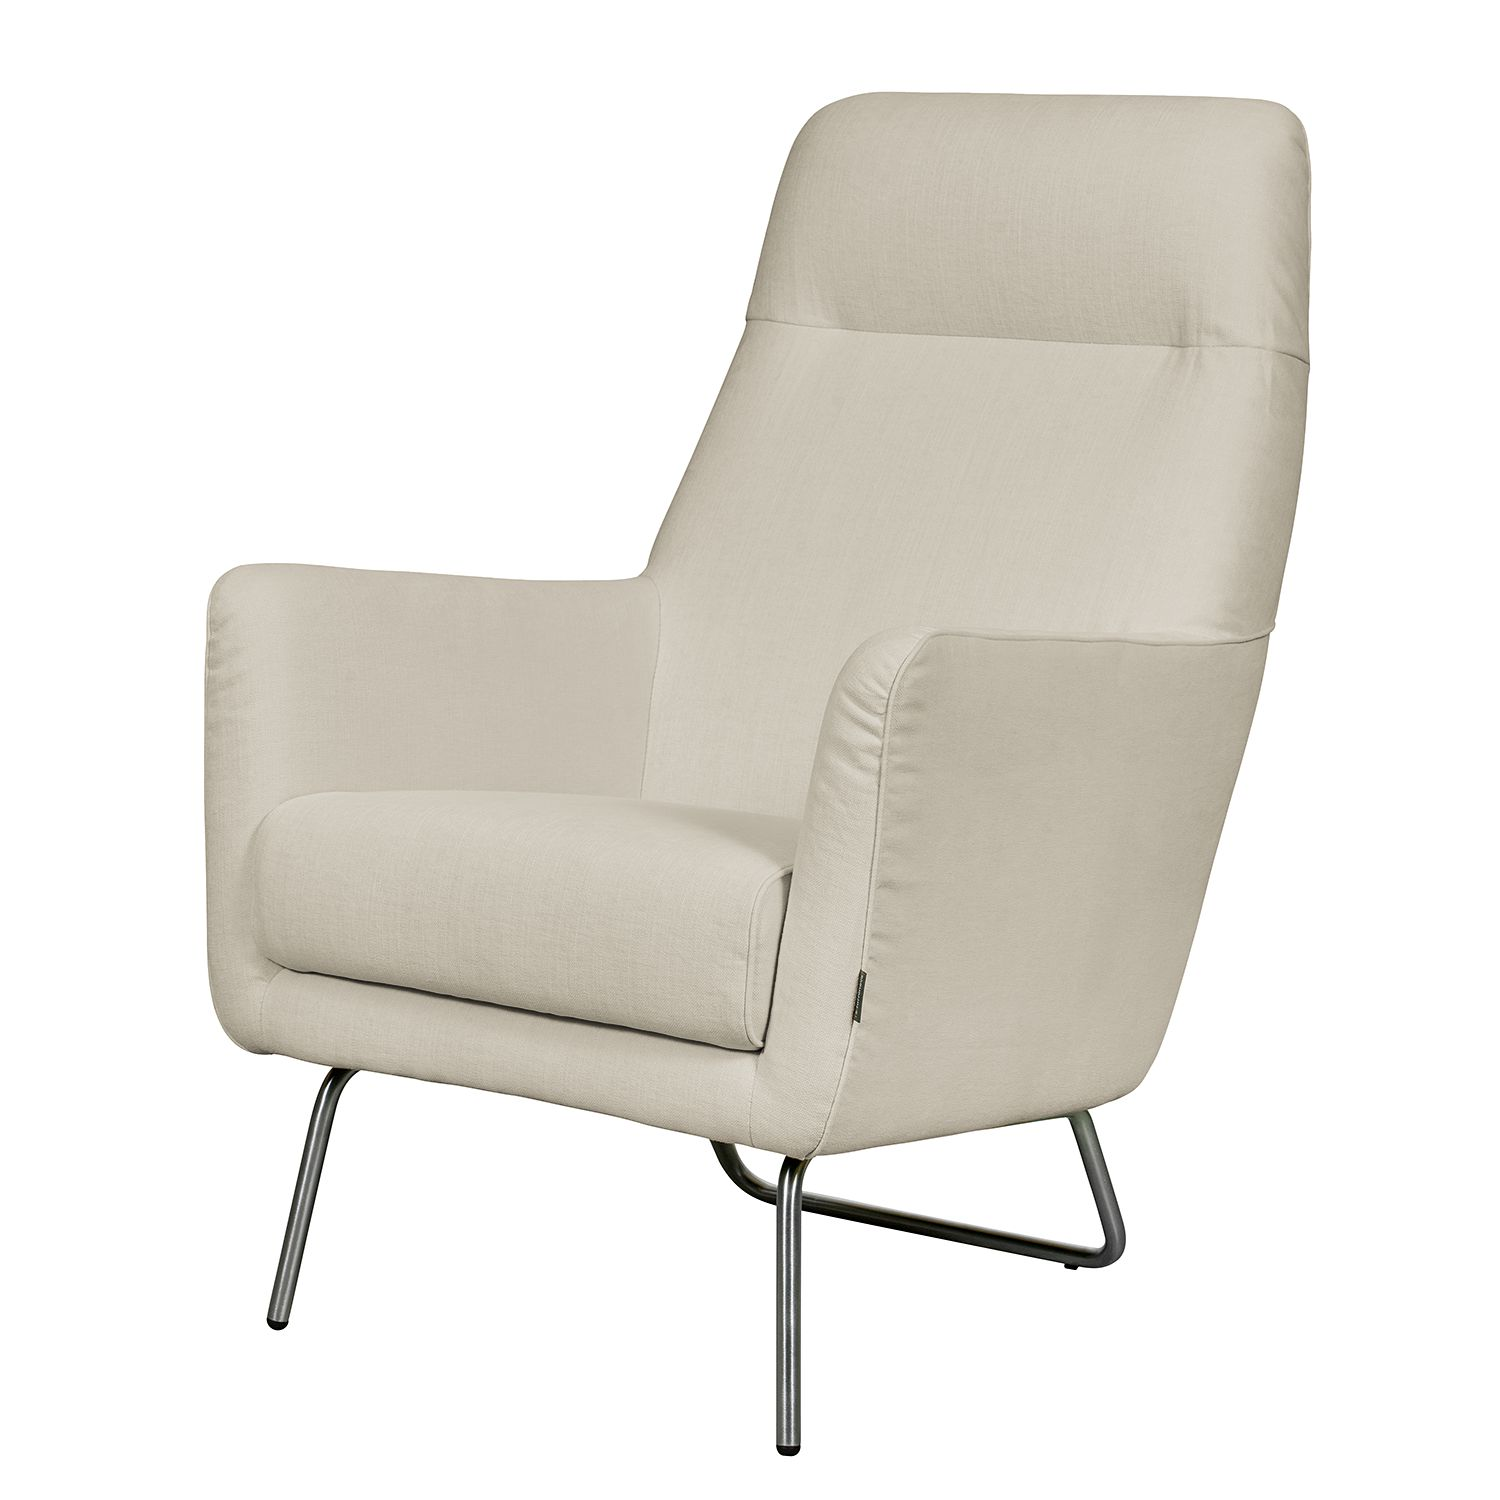 Fauteuil Bebour - Tissu - Sable, Says Who